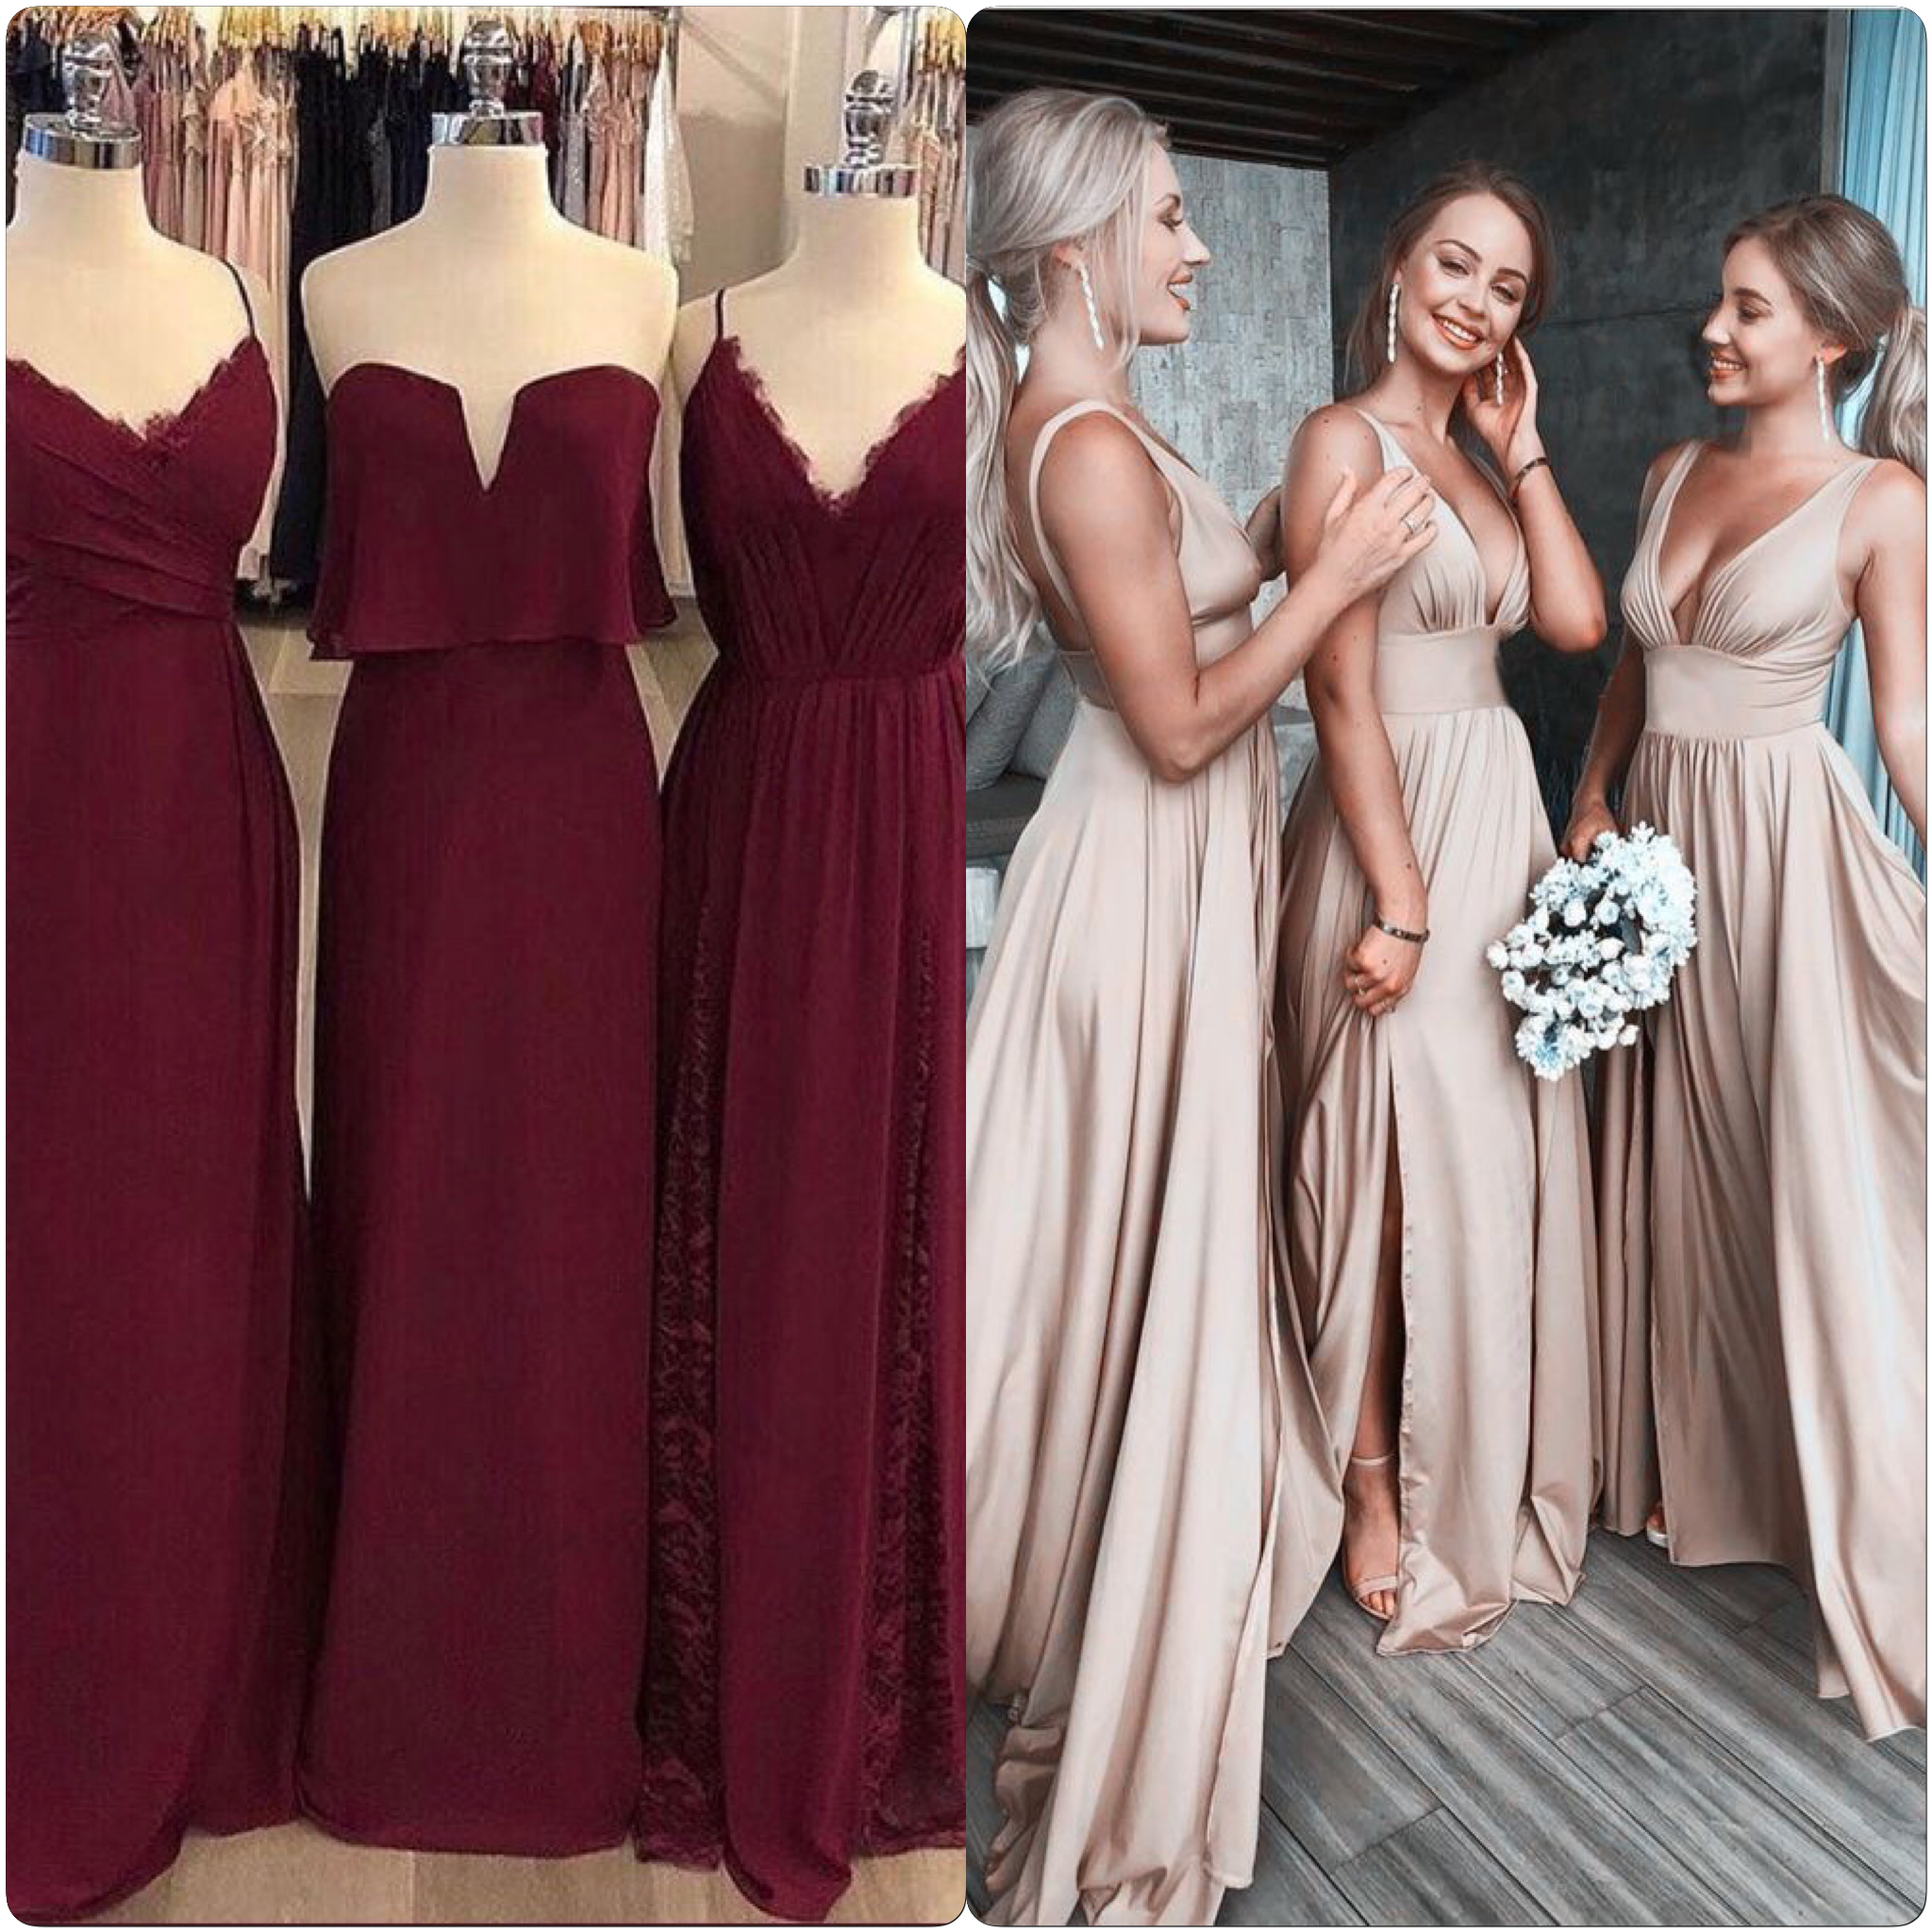 Gold Gowns Wedding: Burgundy And Rose Gold Bridesmaid Dresses